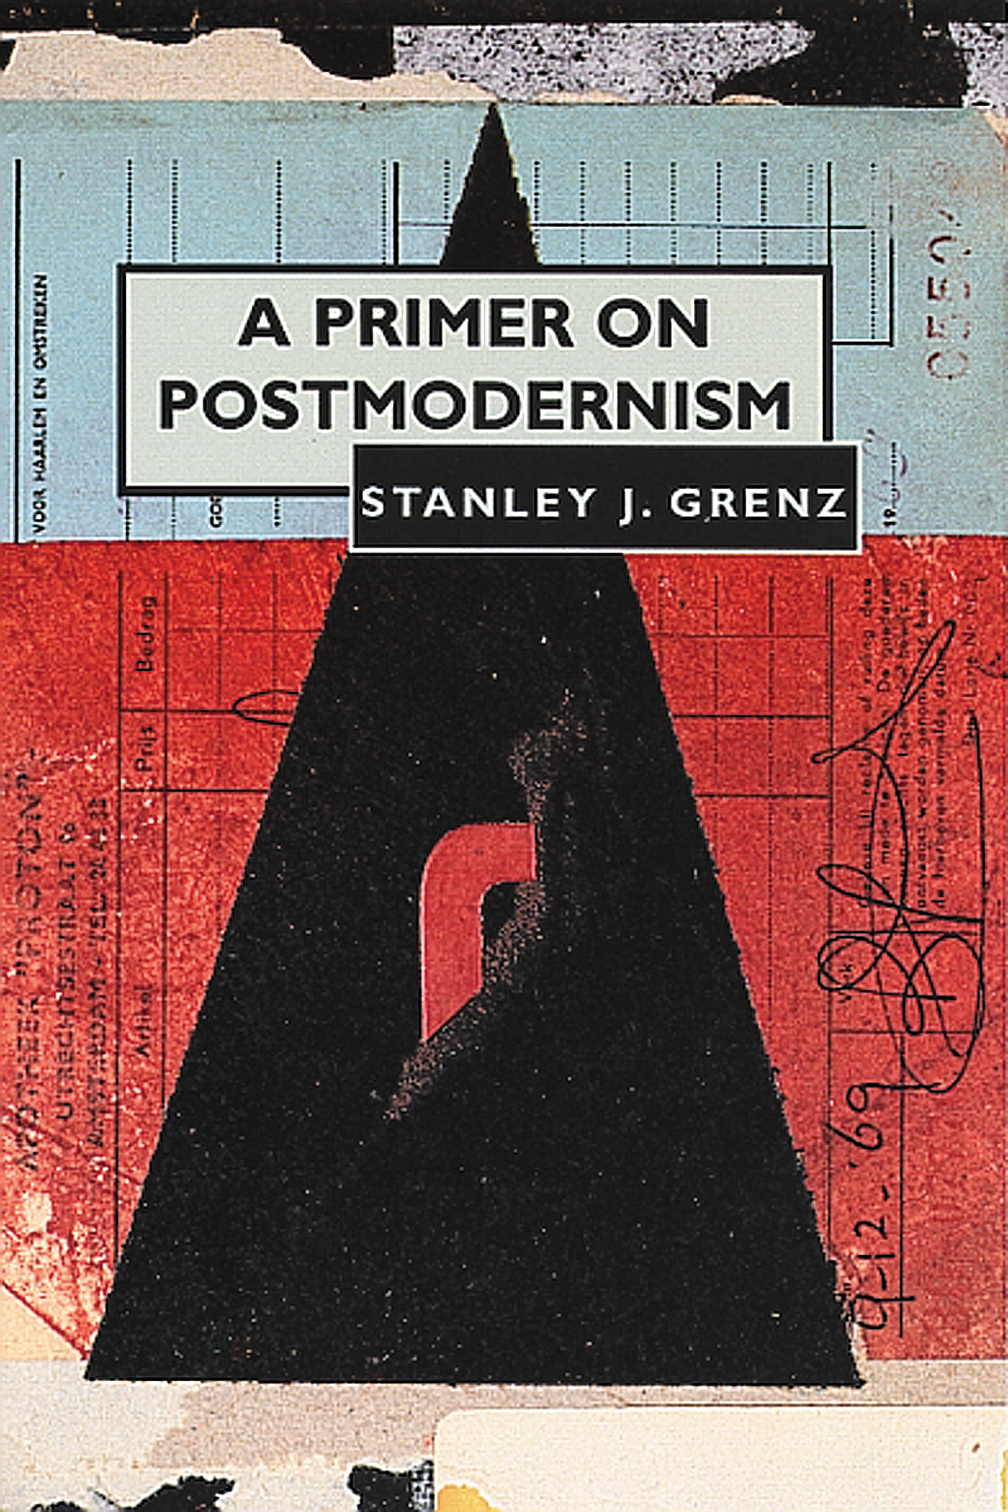 essay postmodernism literature Modernism vs postmodernism postmodern literature, like postmodernism as a ihab hassan in his essay beyond postmodernism states that postmodernism is over and.